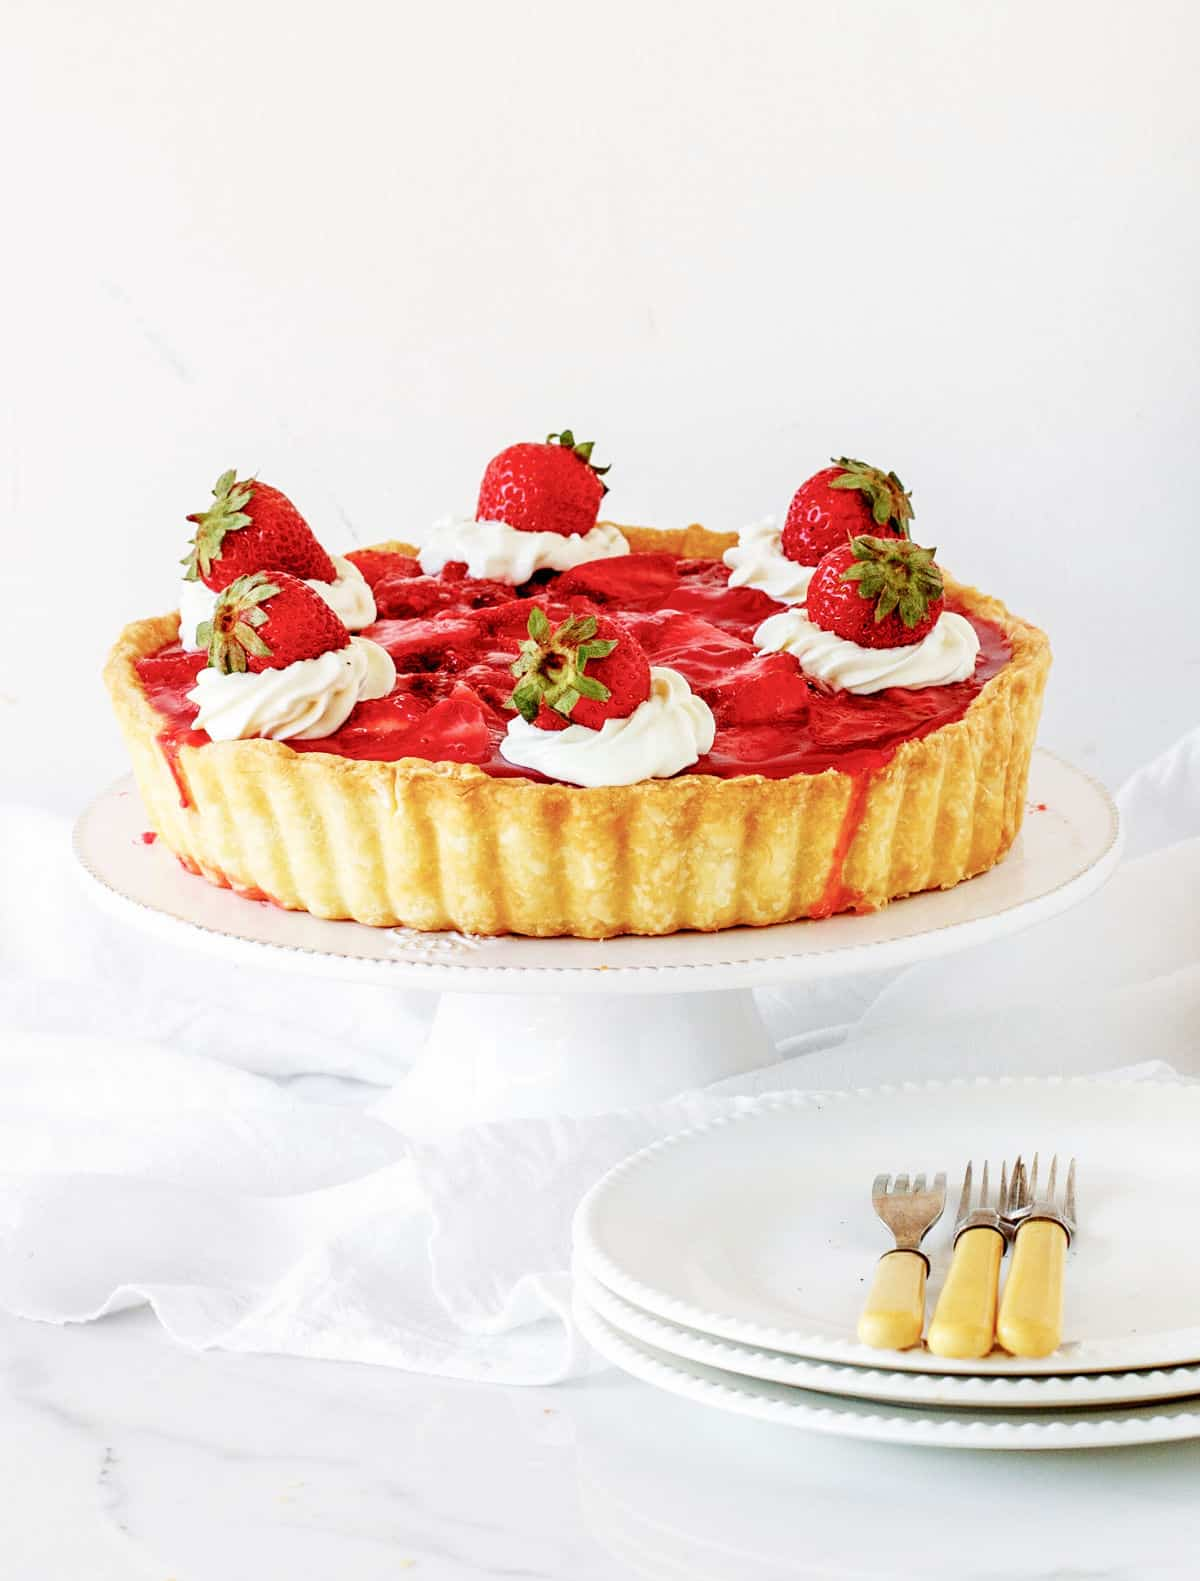 Whole strawberry pie on white cake stand, plates with forks, white background